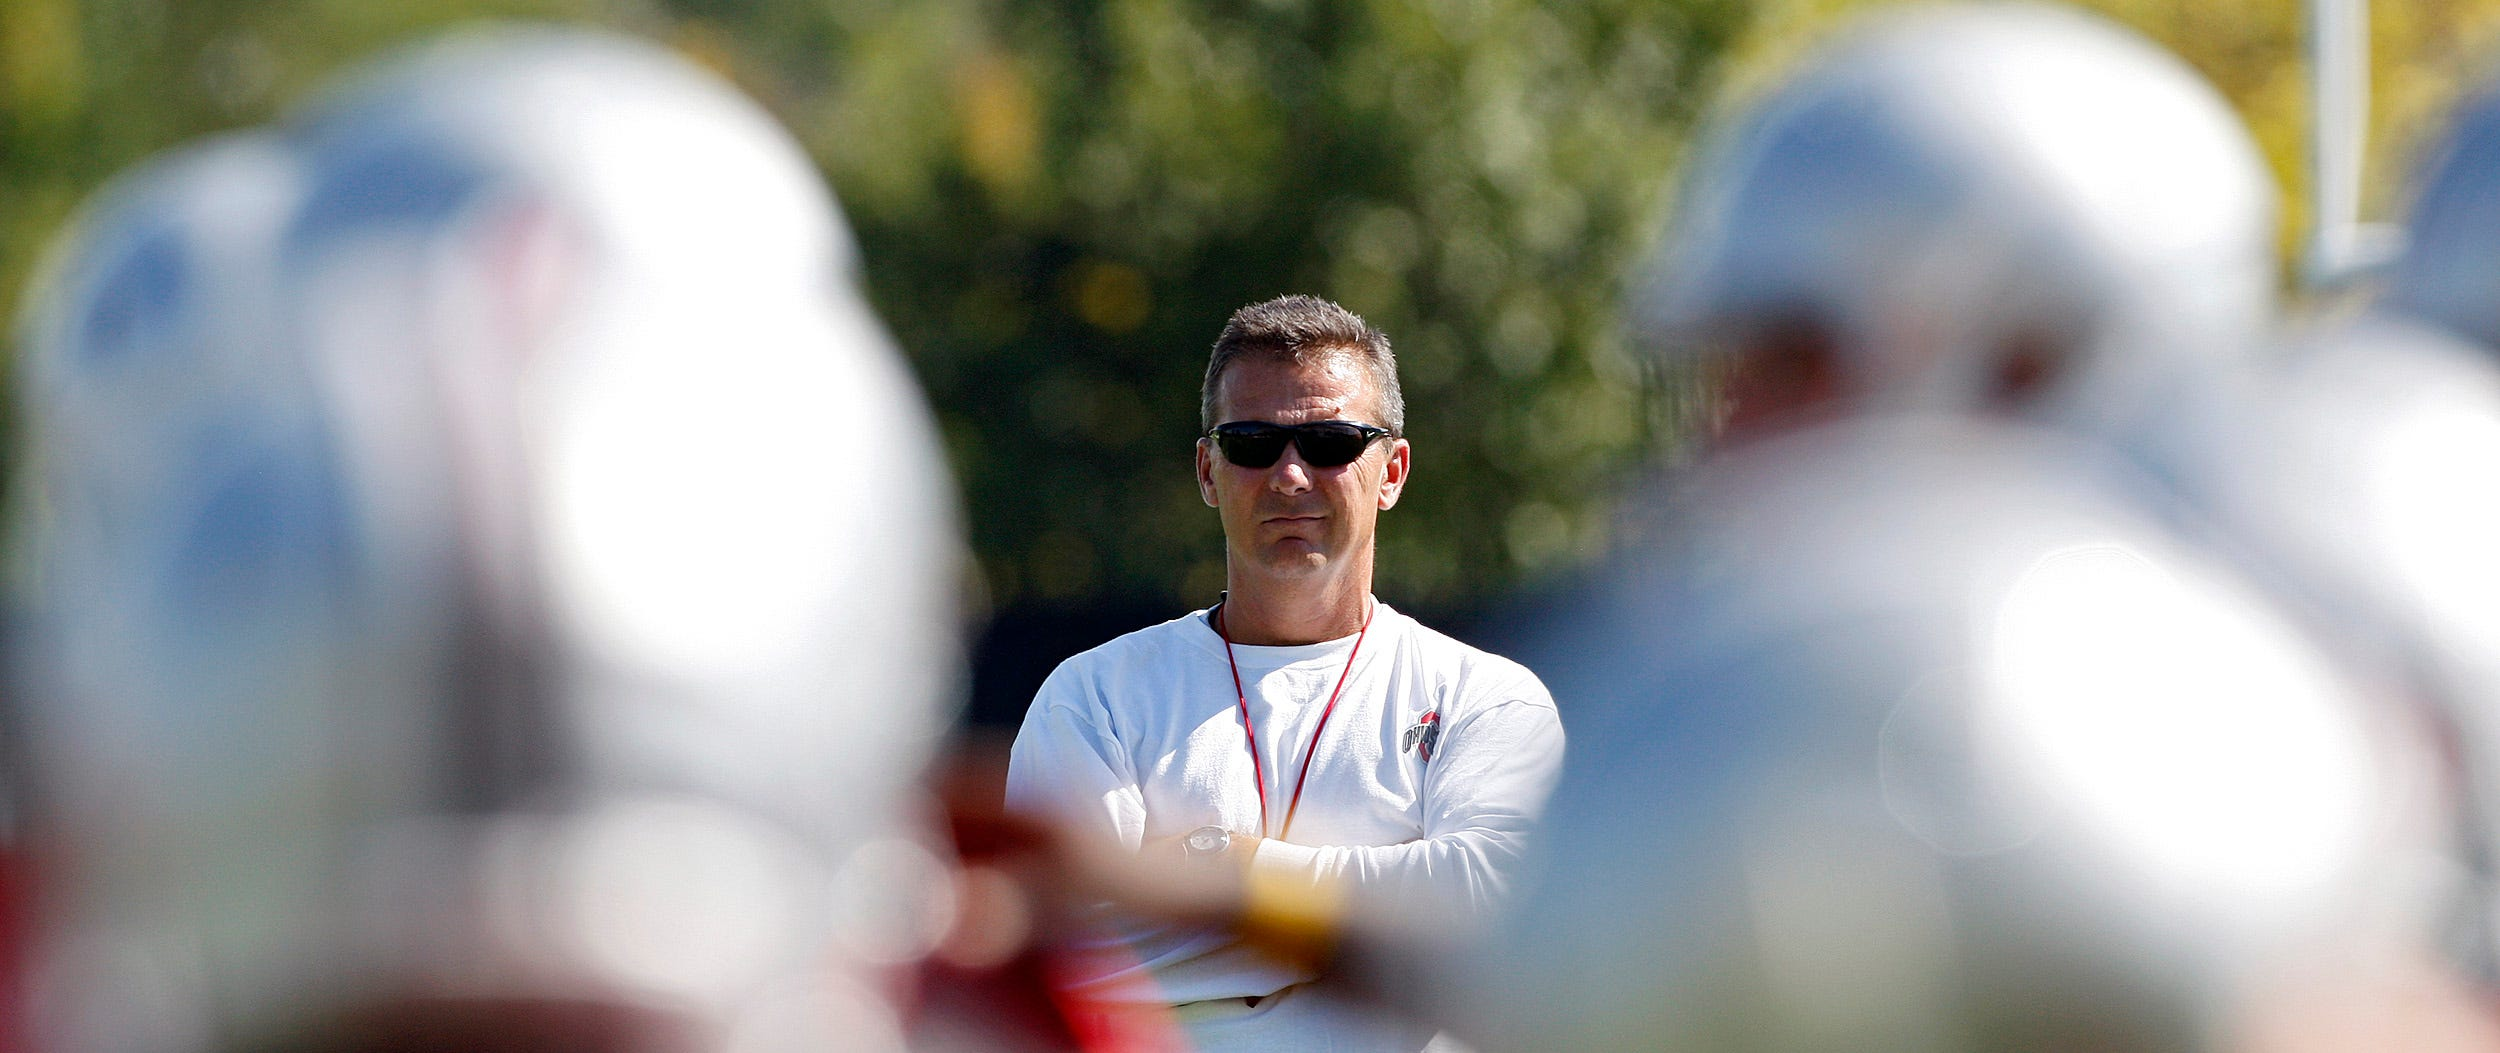 Urban Meyer watches his team warmup before the start of practice at Harmon Family Football Park, August 6, 2012.